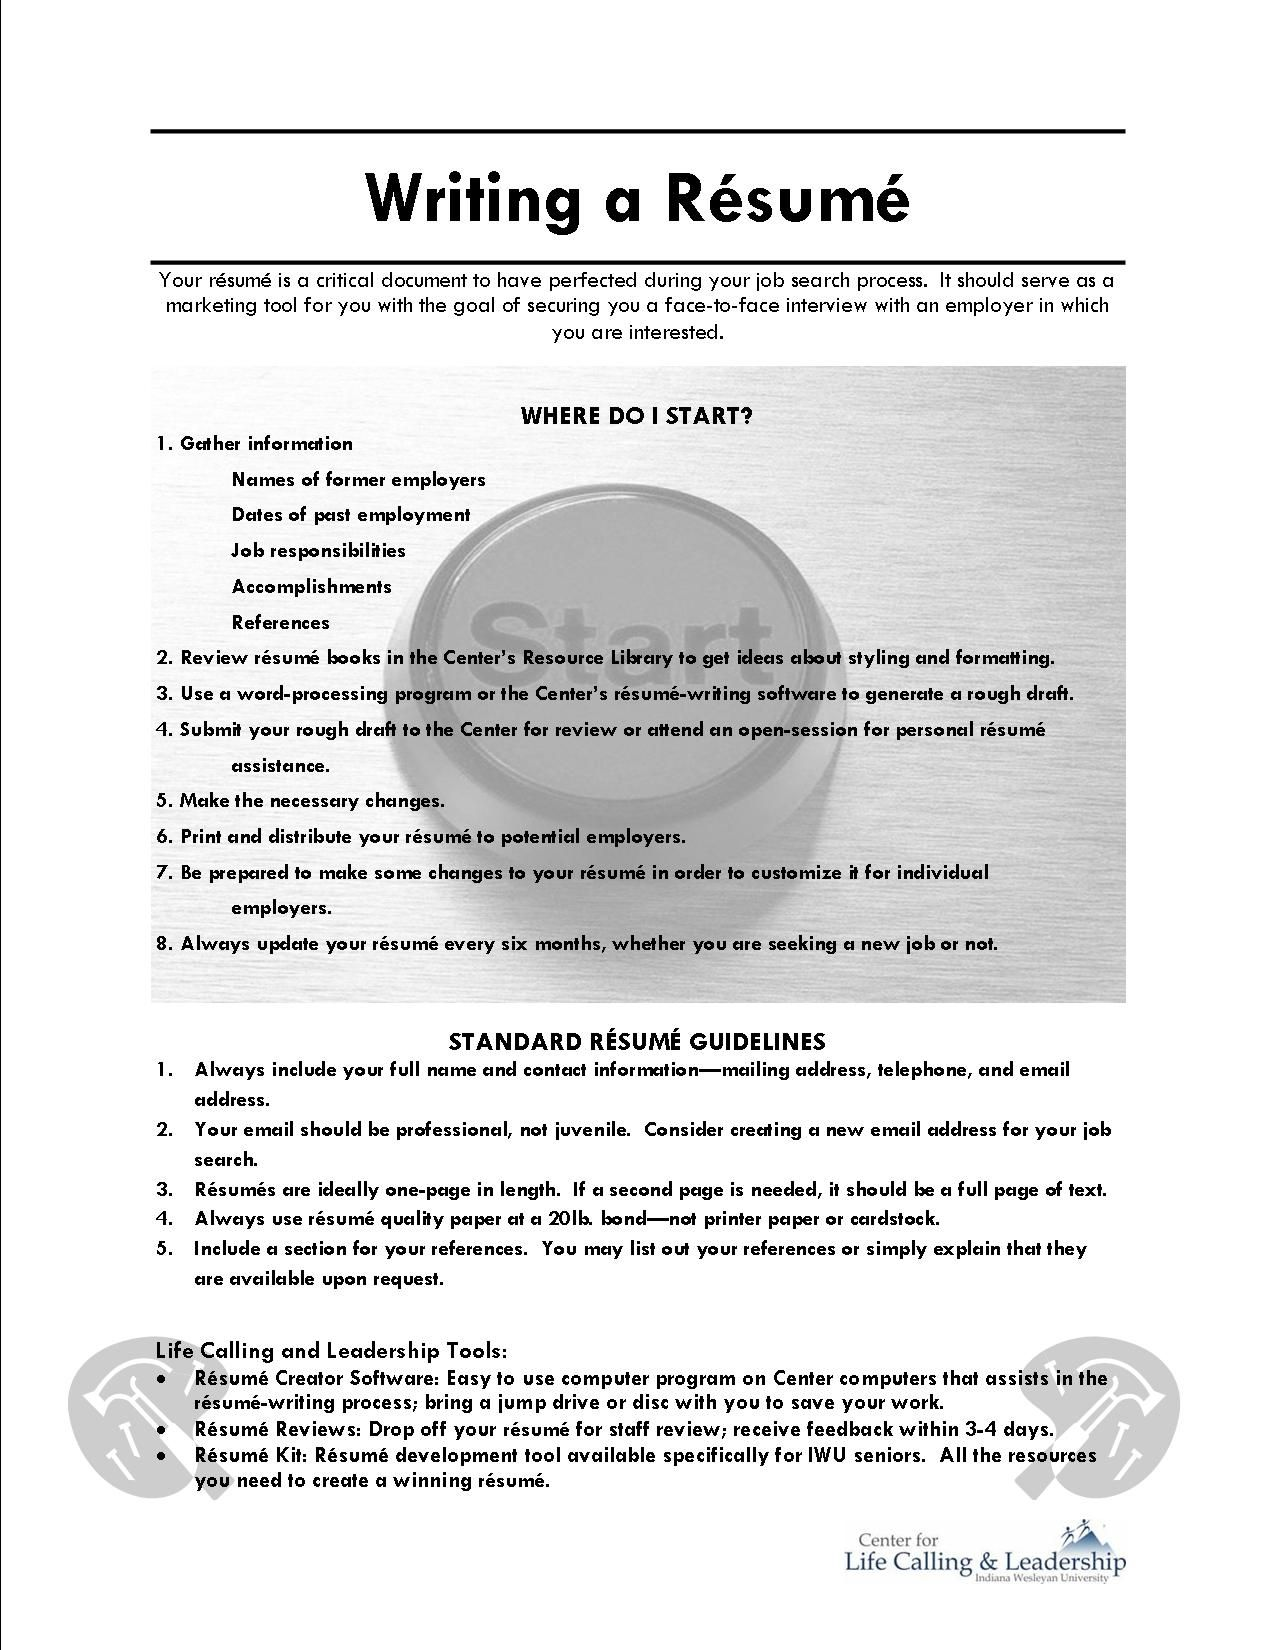 Resume Writing Examples Writing A Resume Online Resourceswriting A Resume Cover Letter